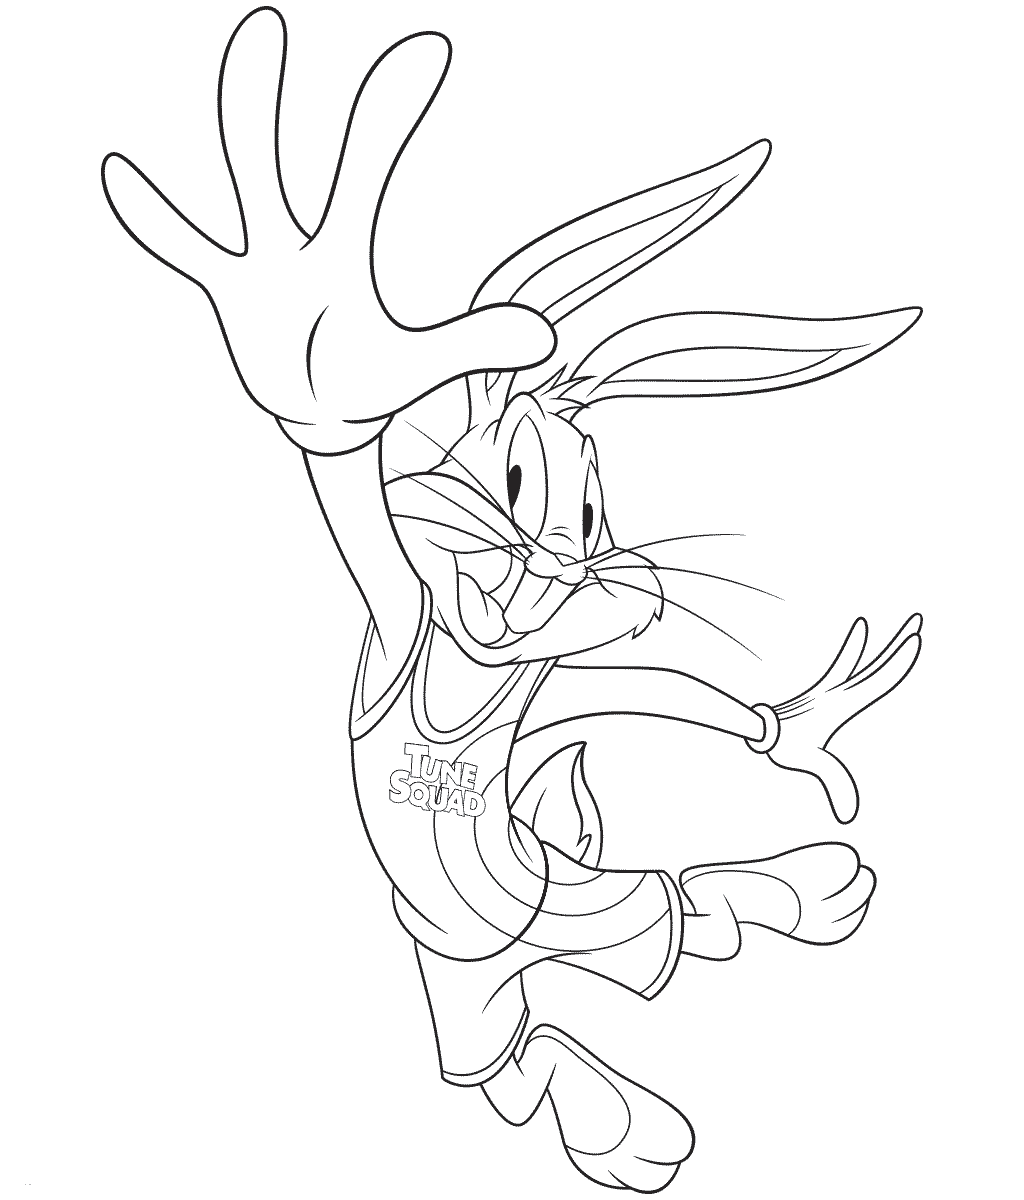 Bugs Bunny from Space Jam 2 Coloring Page